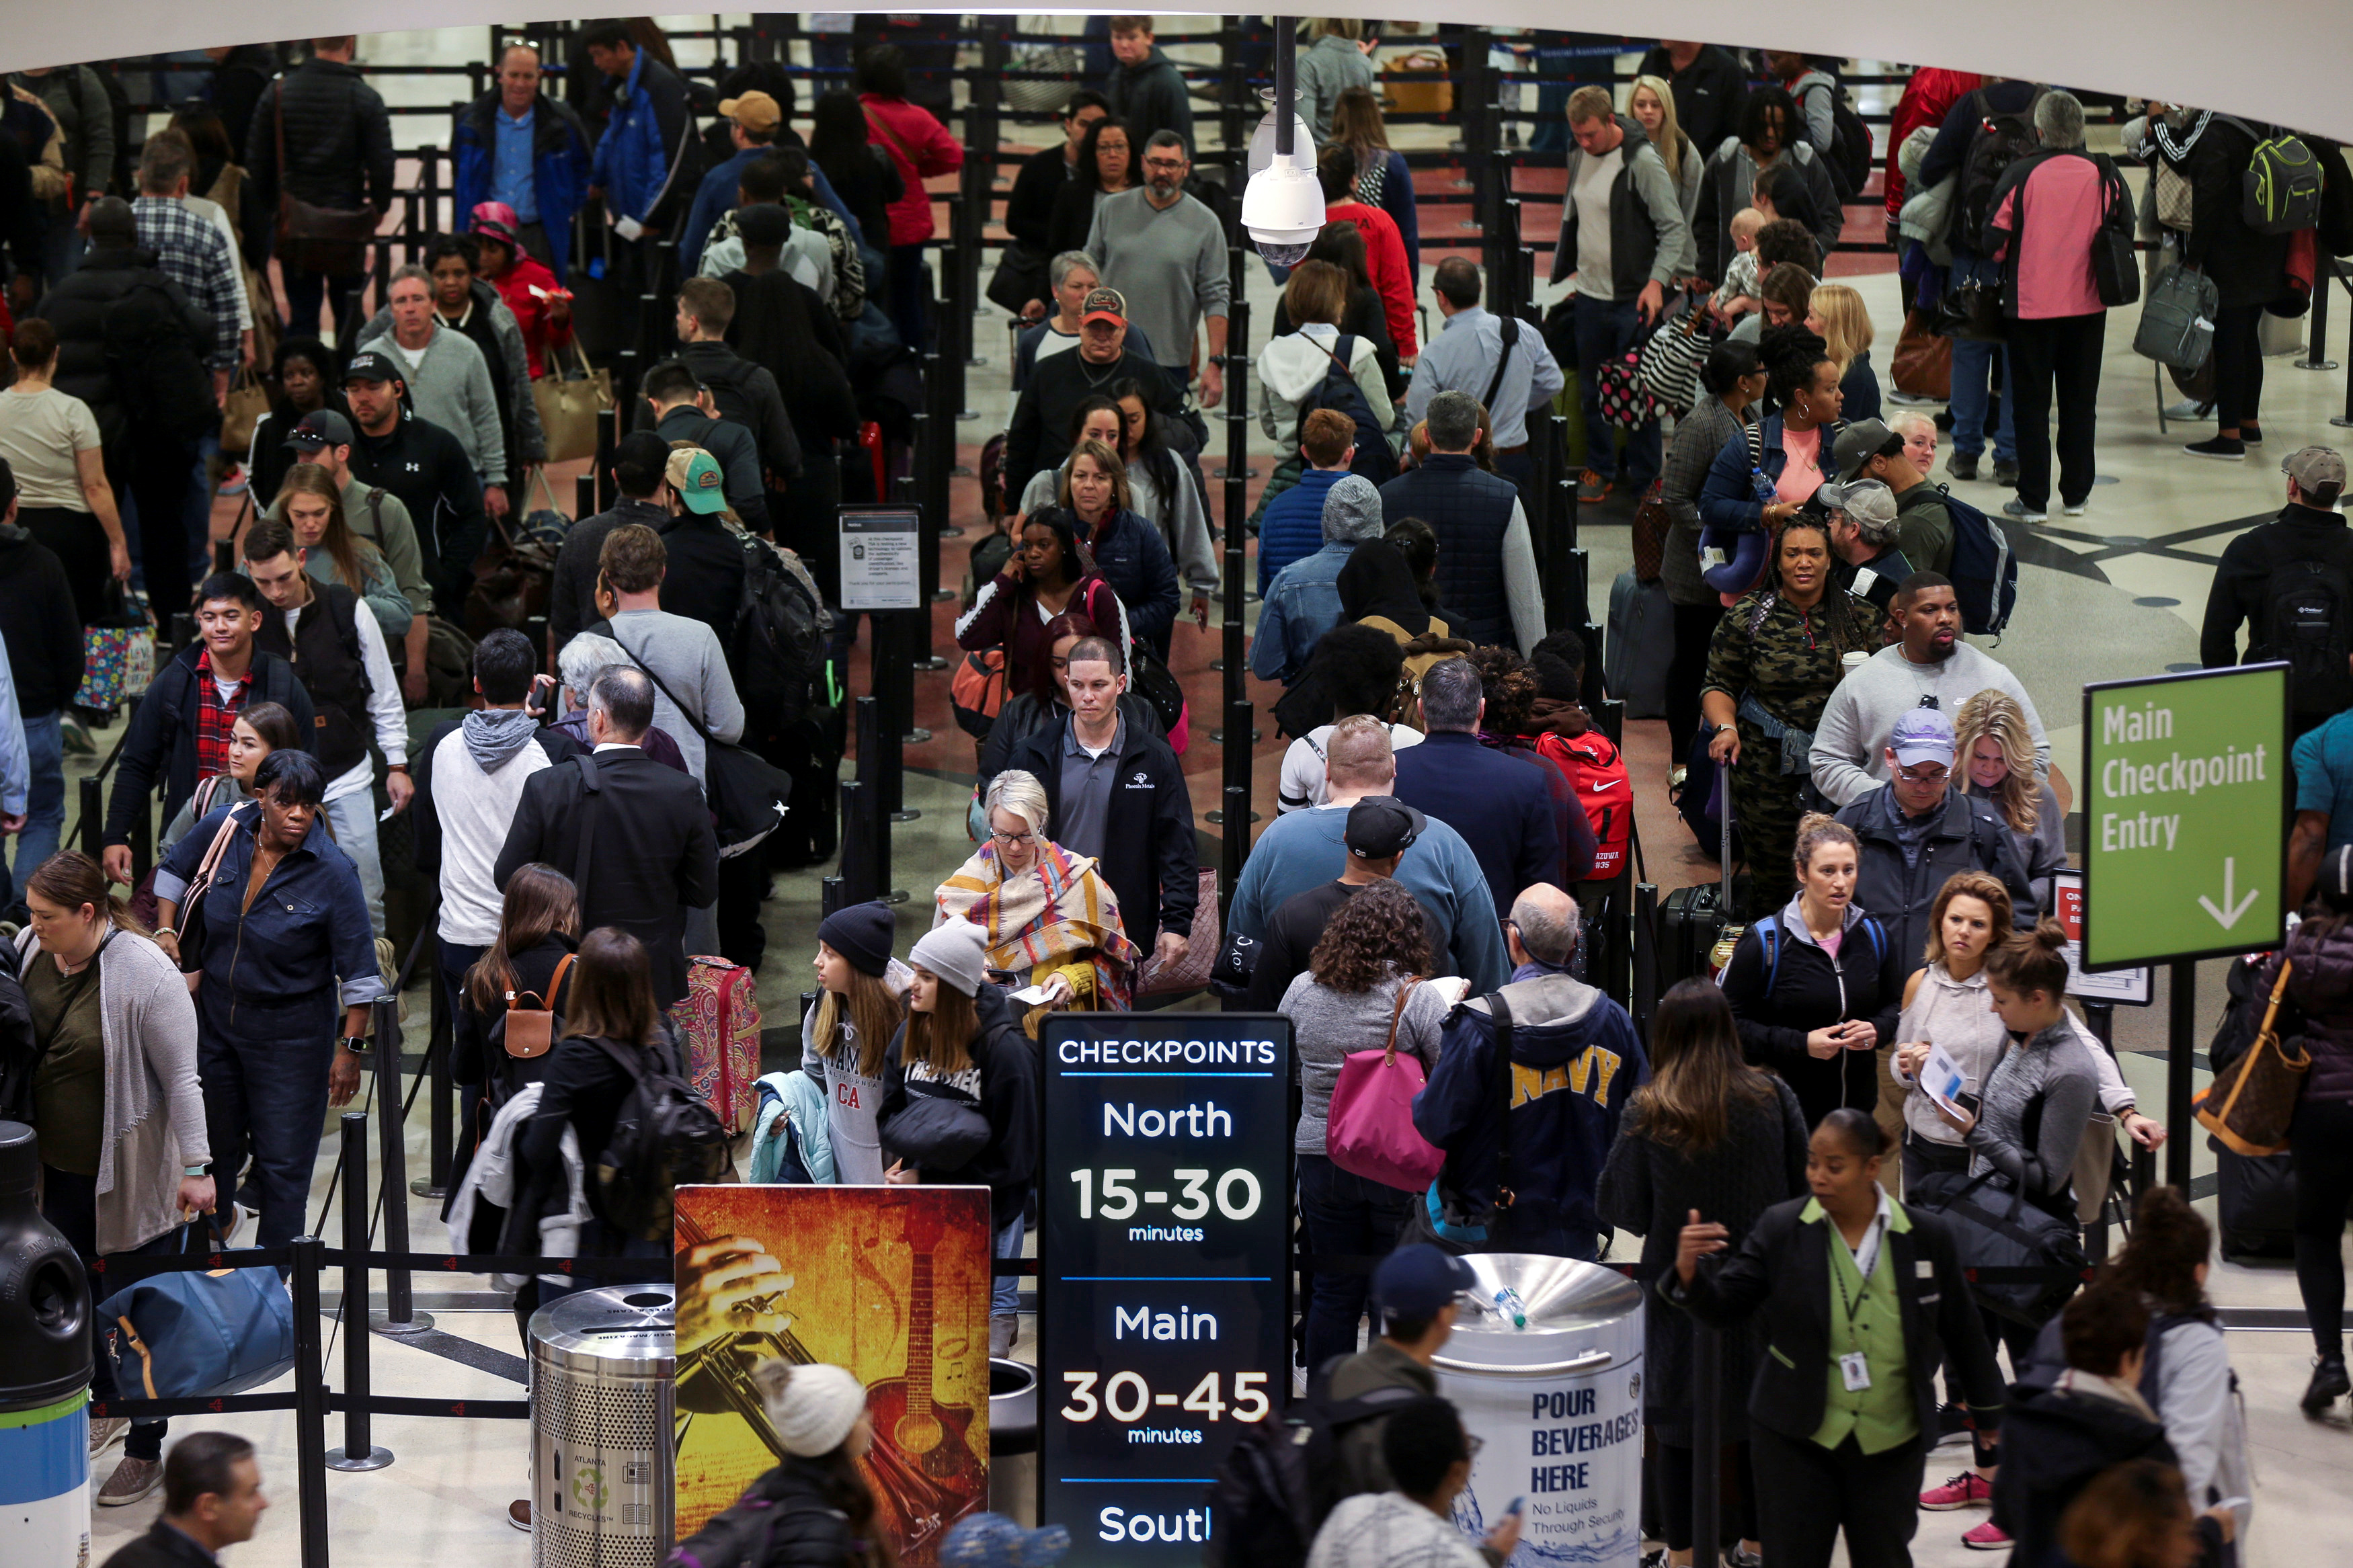 Long lines are seen at a Transportation Security Administration (TSA) security checkpoint at Hartsfield-Jackson Atlanta International Airport amid the partial federal government shutdown, in Atlanta, Georgia, U.S., January 18, 2019. REUTERS/Elijah Nouvelage